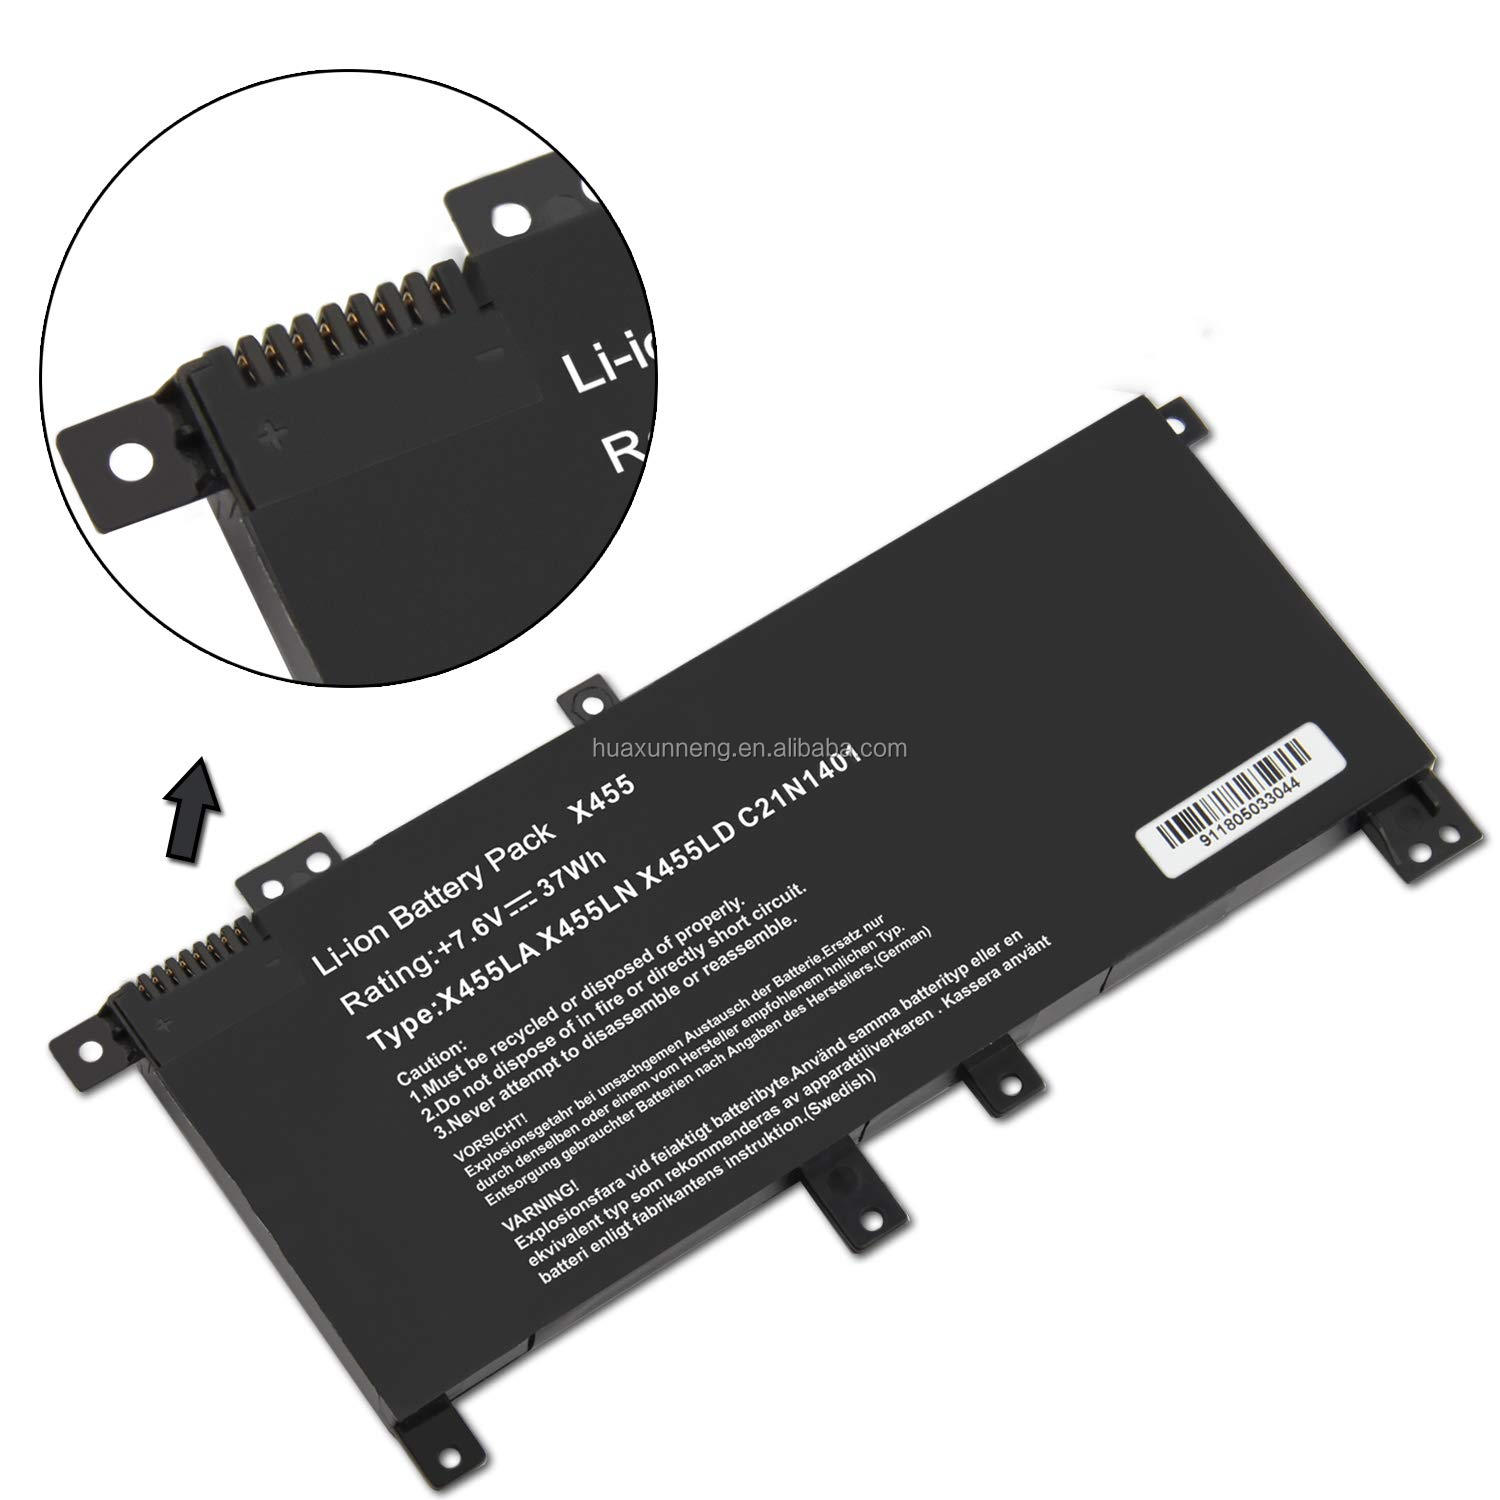 7.6V 37Wh C21N1401 C21PQCH PP21 Laptop Battery for Asus X455 X455LA X455LD X455LN R455LD Series notebook